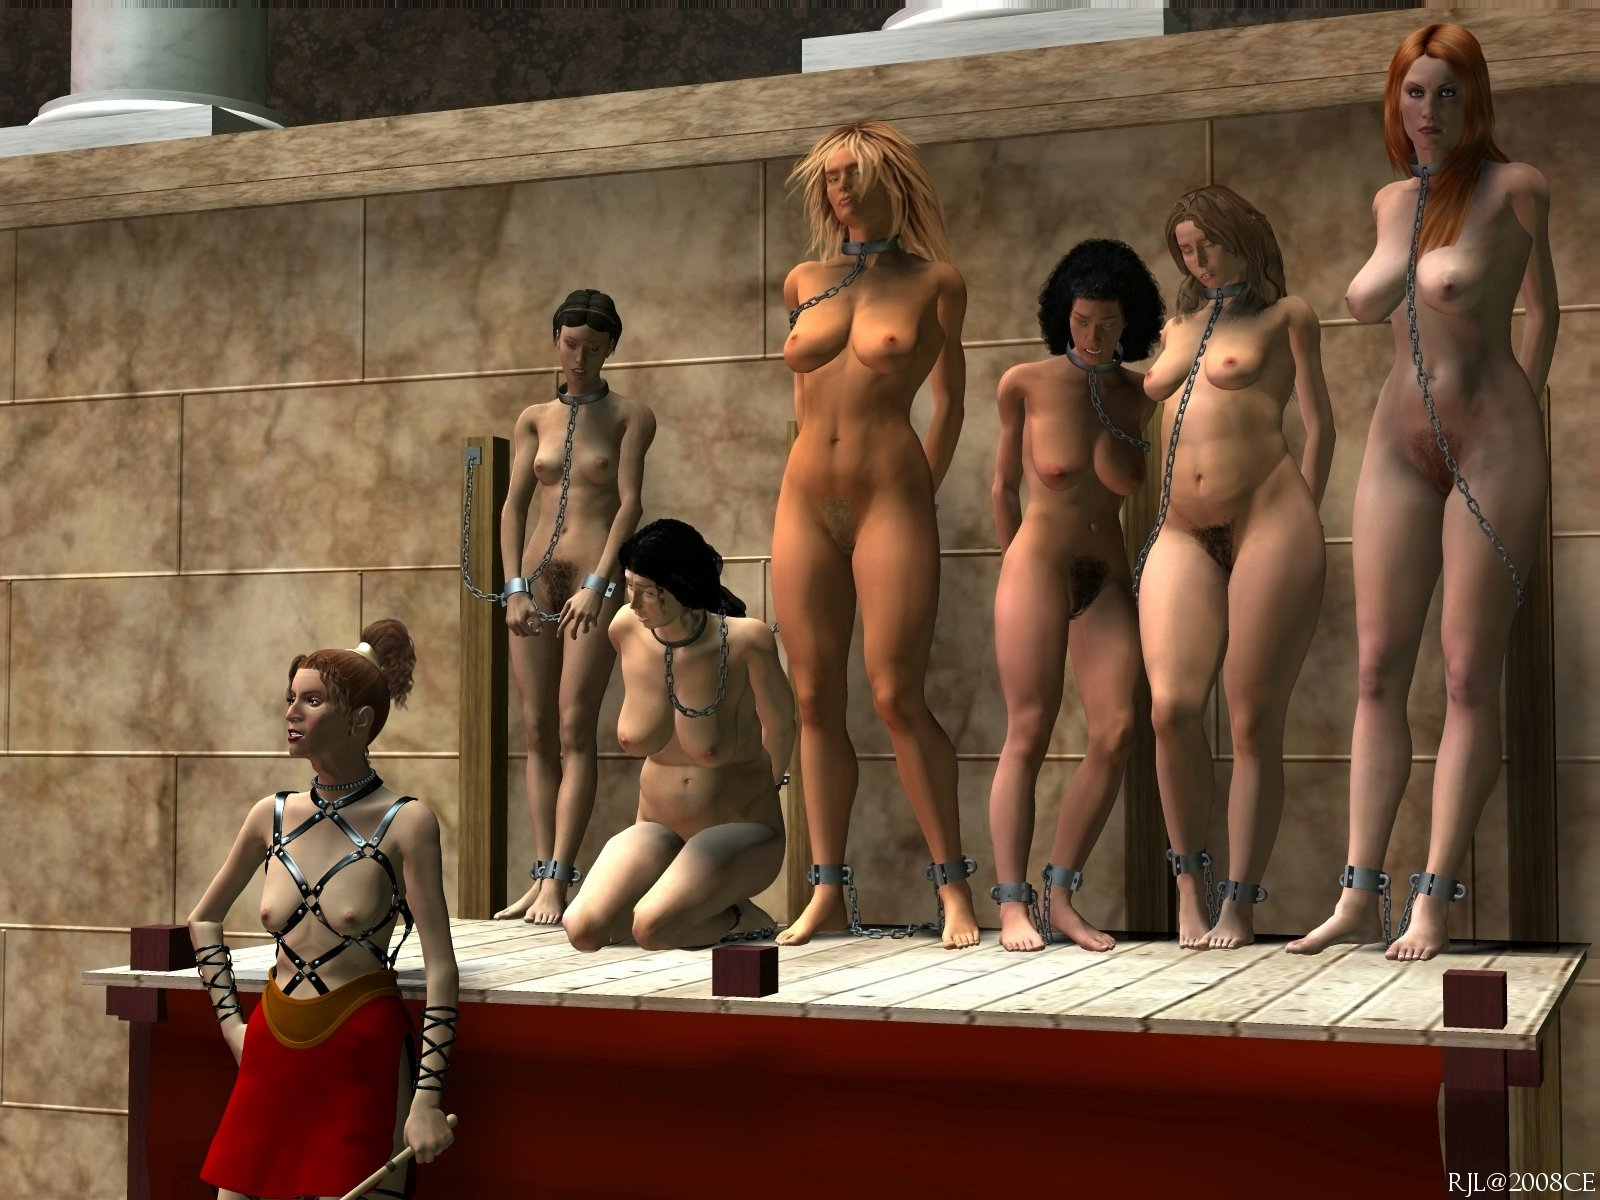 Cool nude games on internet